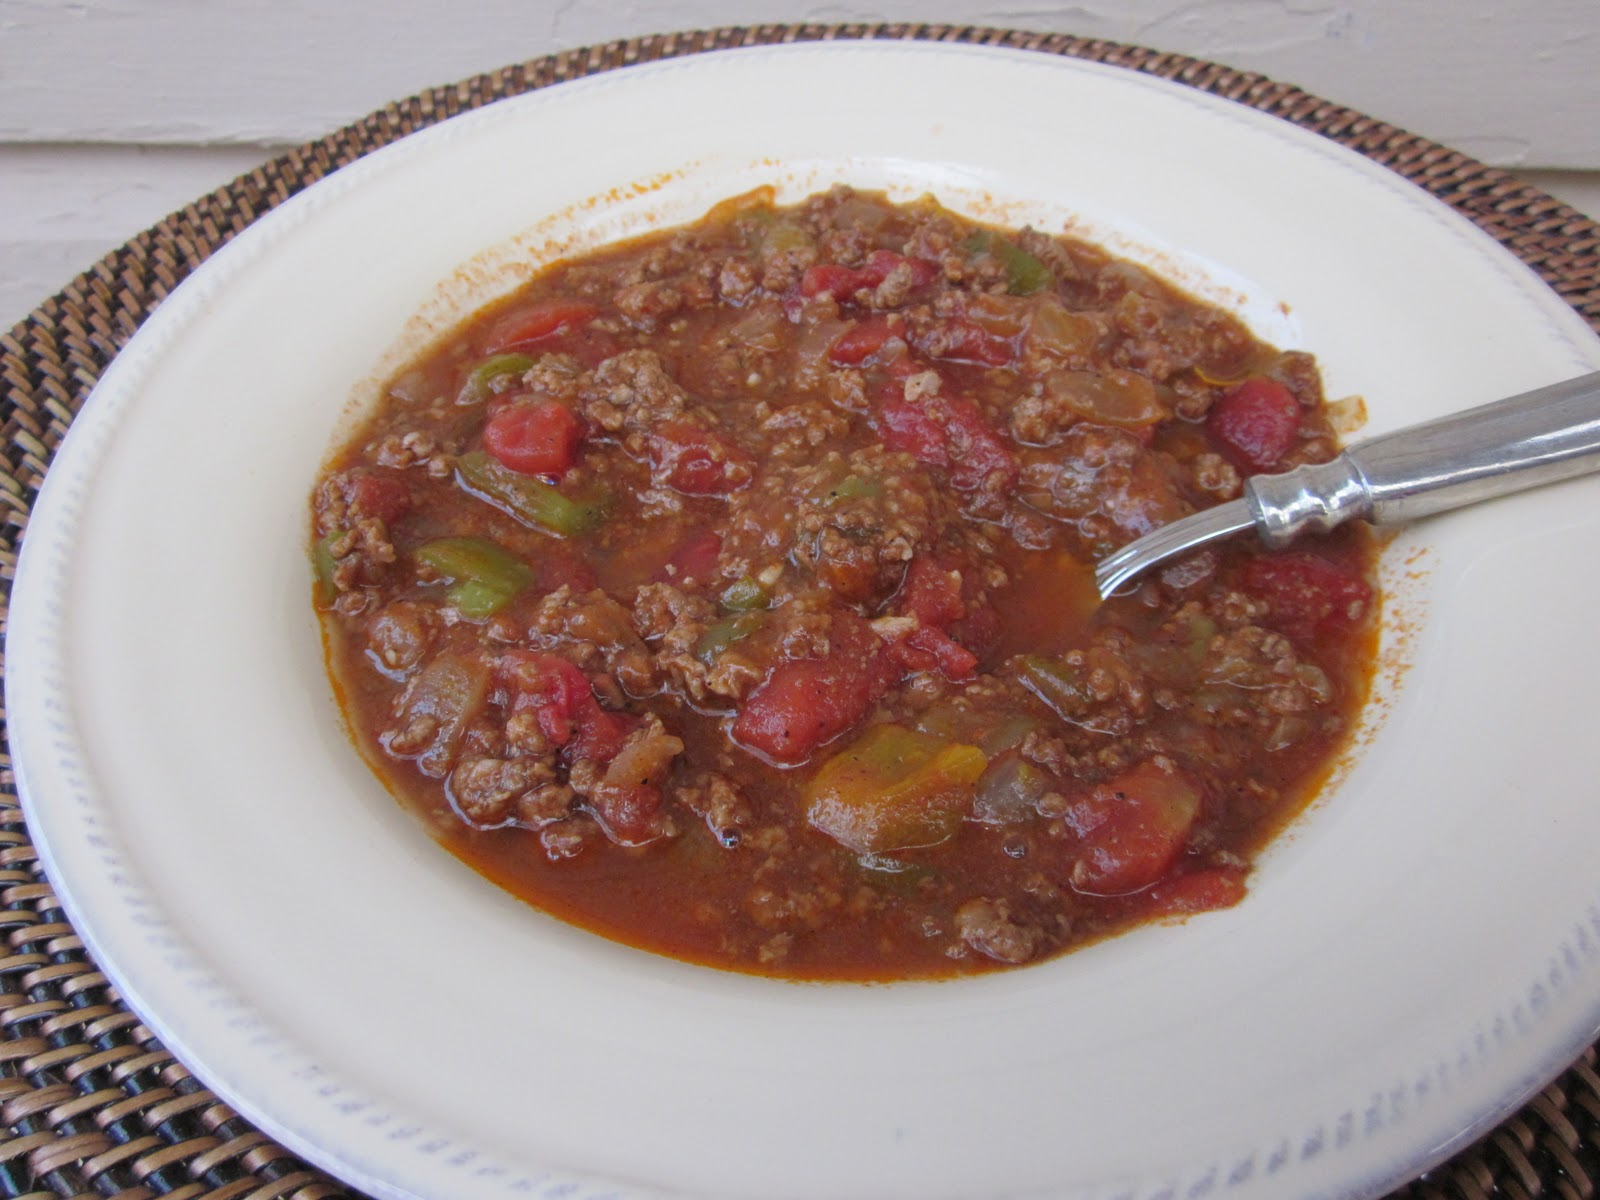 ... beef chili spicy slow cooker beef chili slow cooked homemade chili